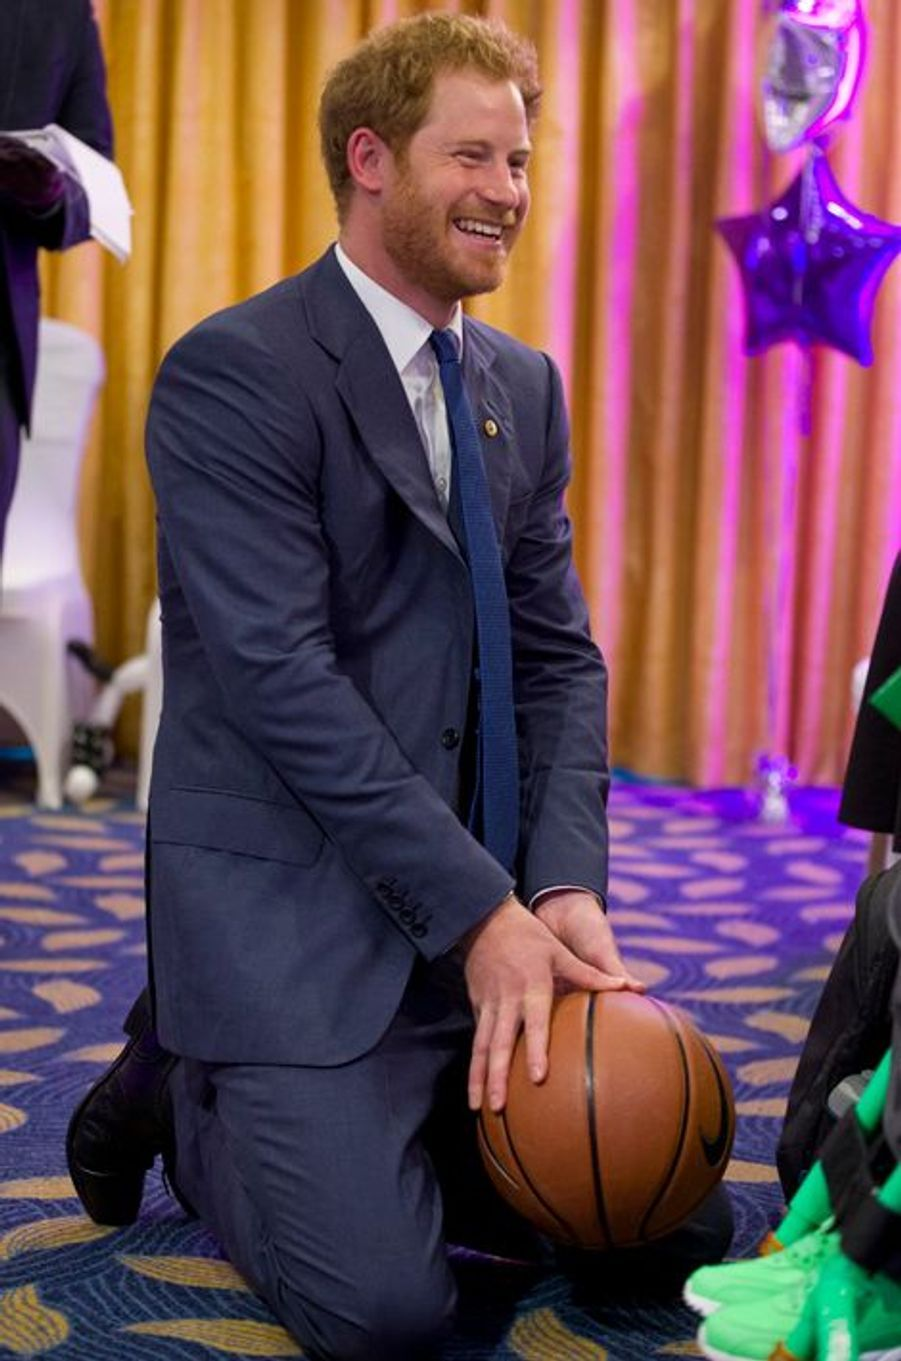 Le prince Harry aux Wellchild Awards à Londres, le 5 octobre 2015